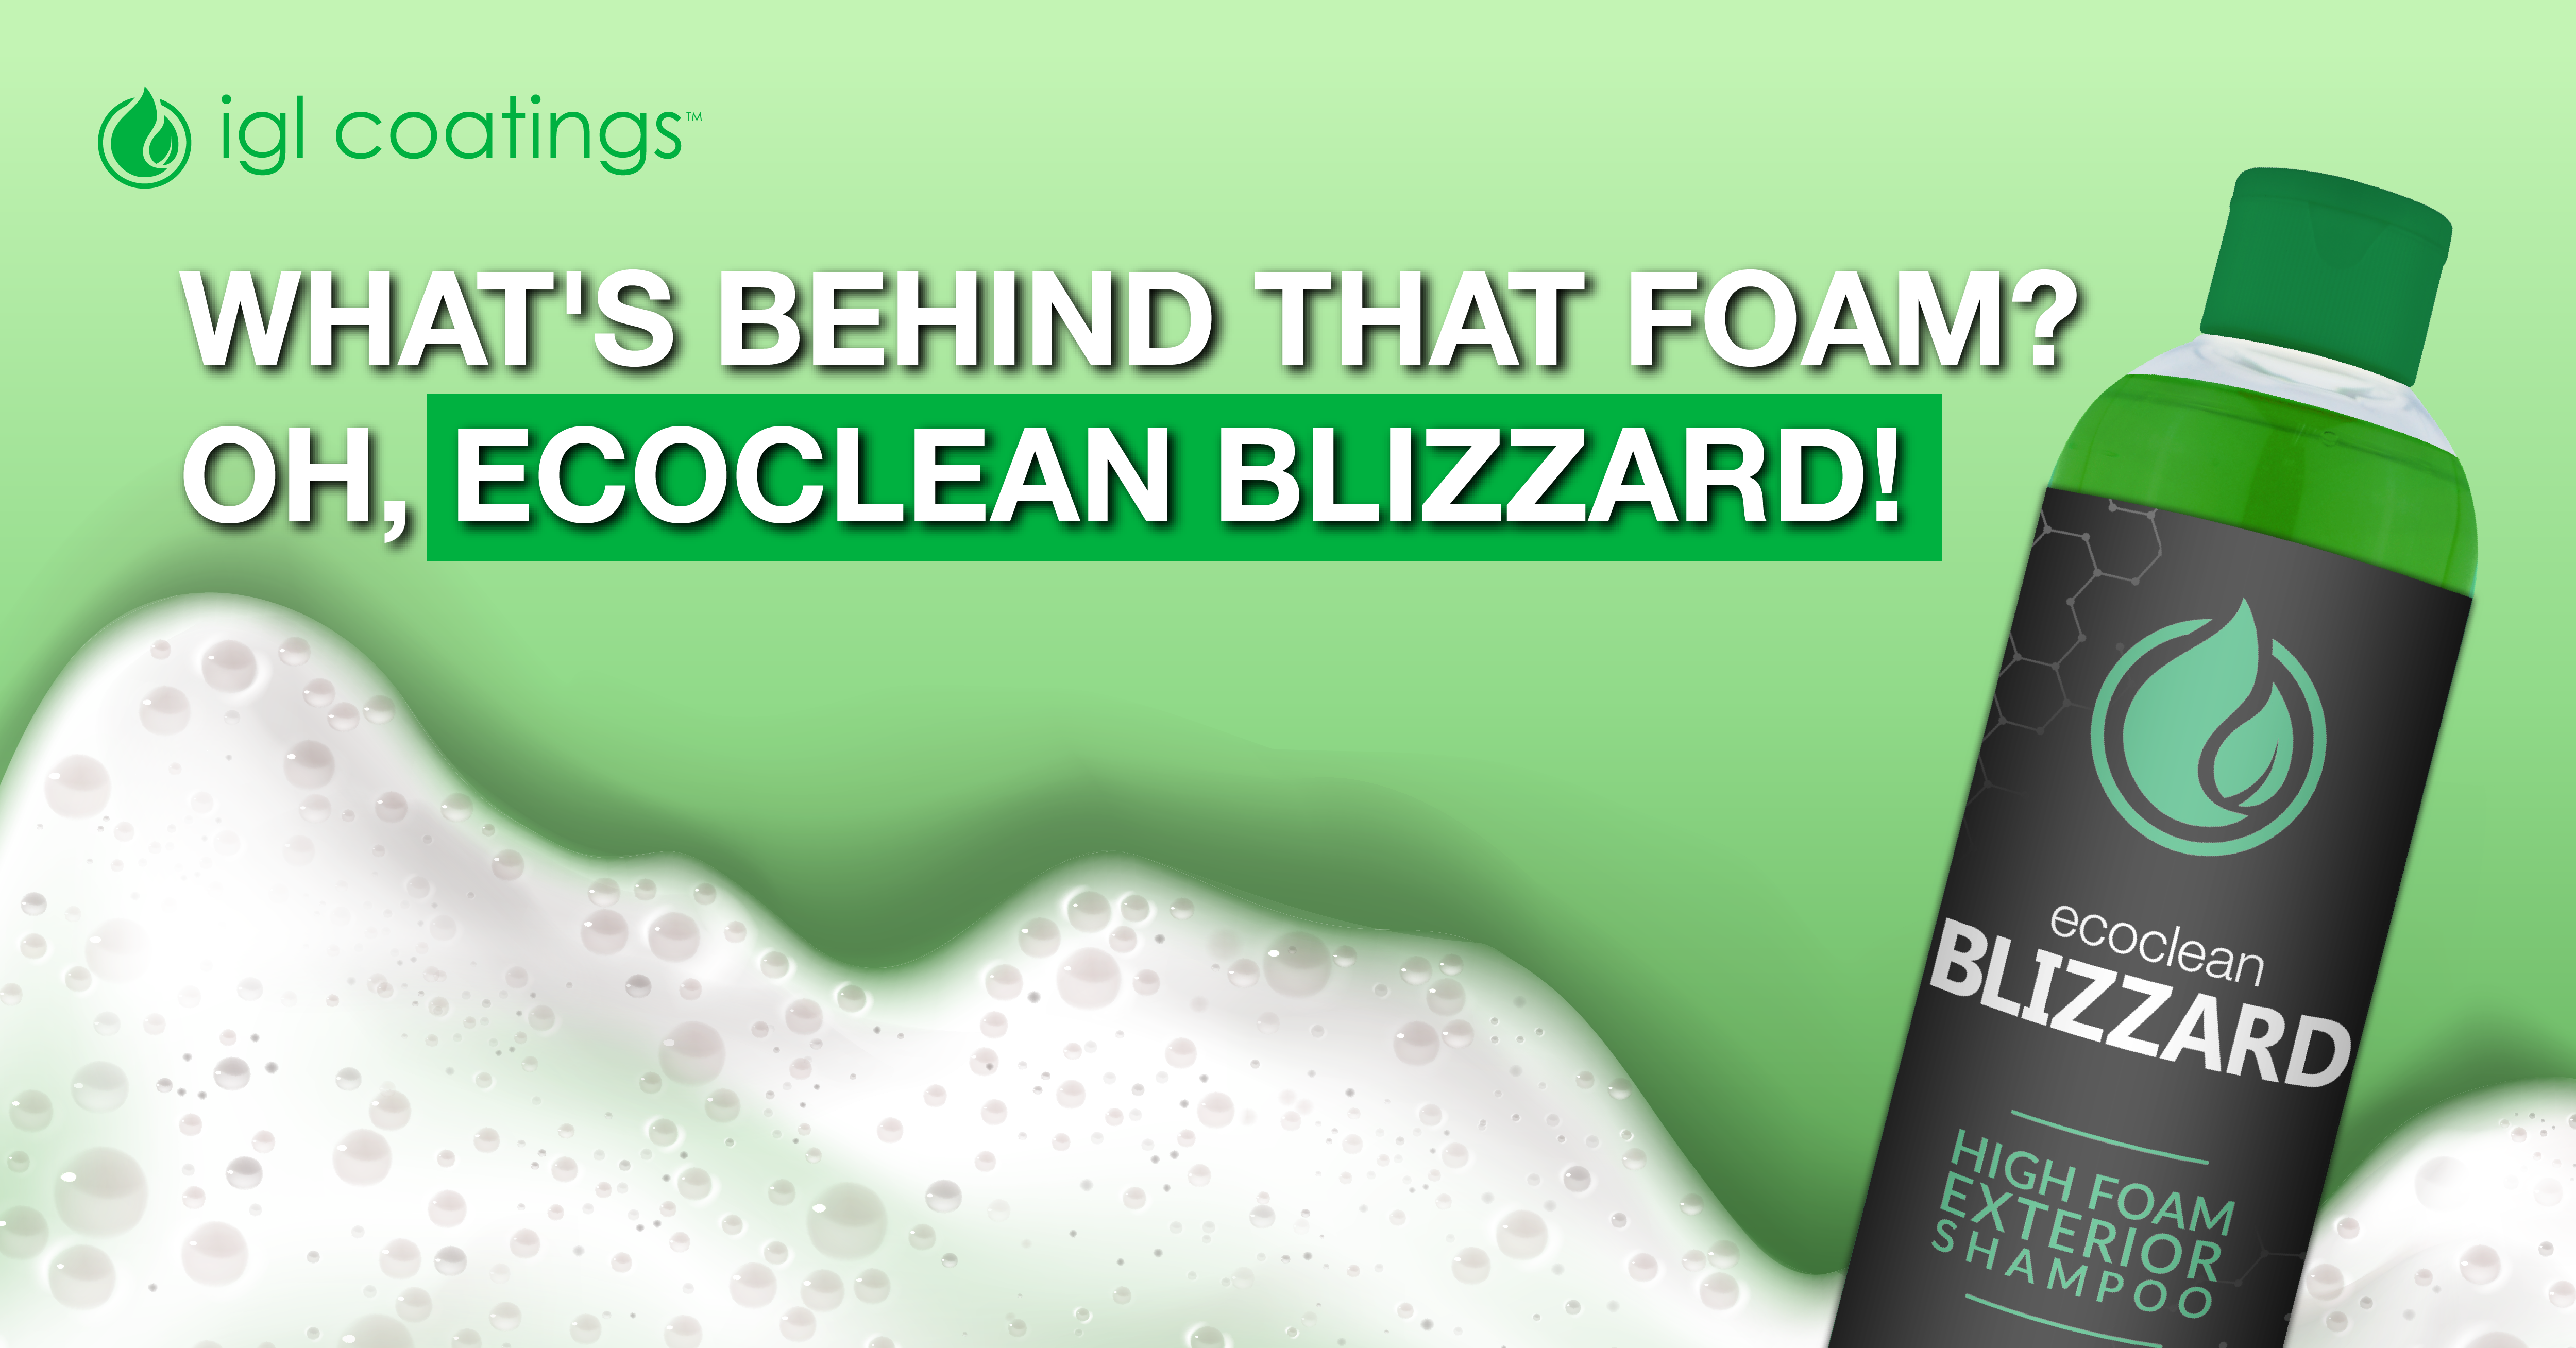 A Complete White-Out?! Must Be Our Ecoclean Blizzard!